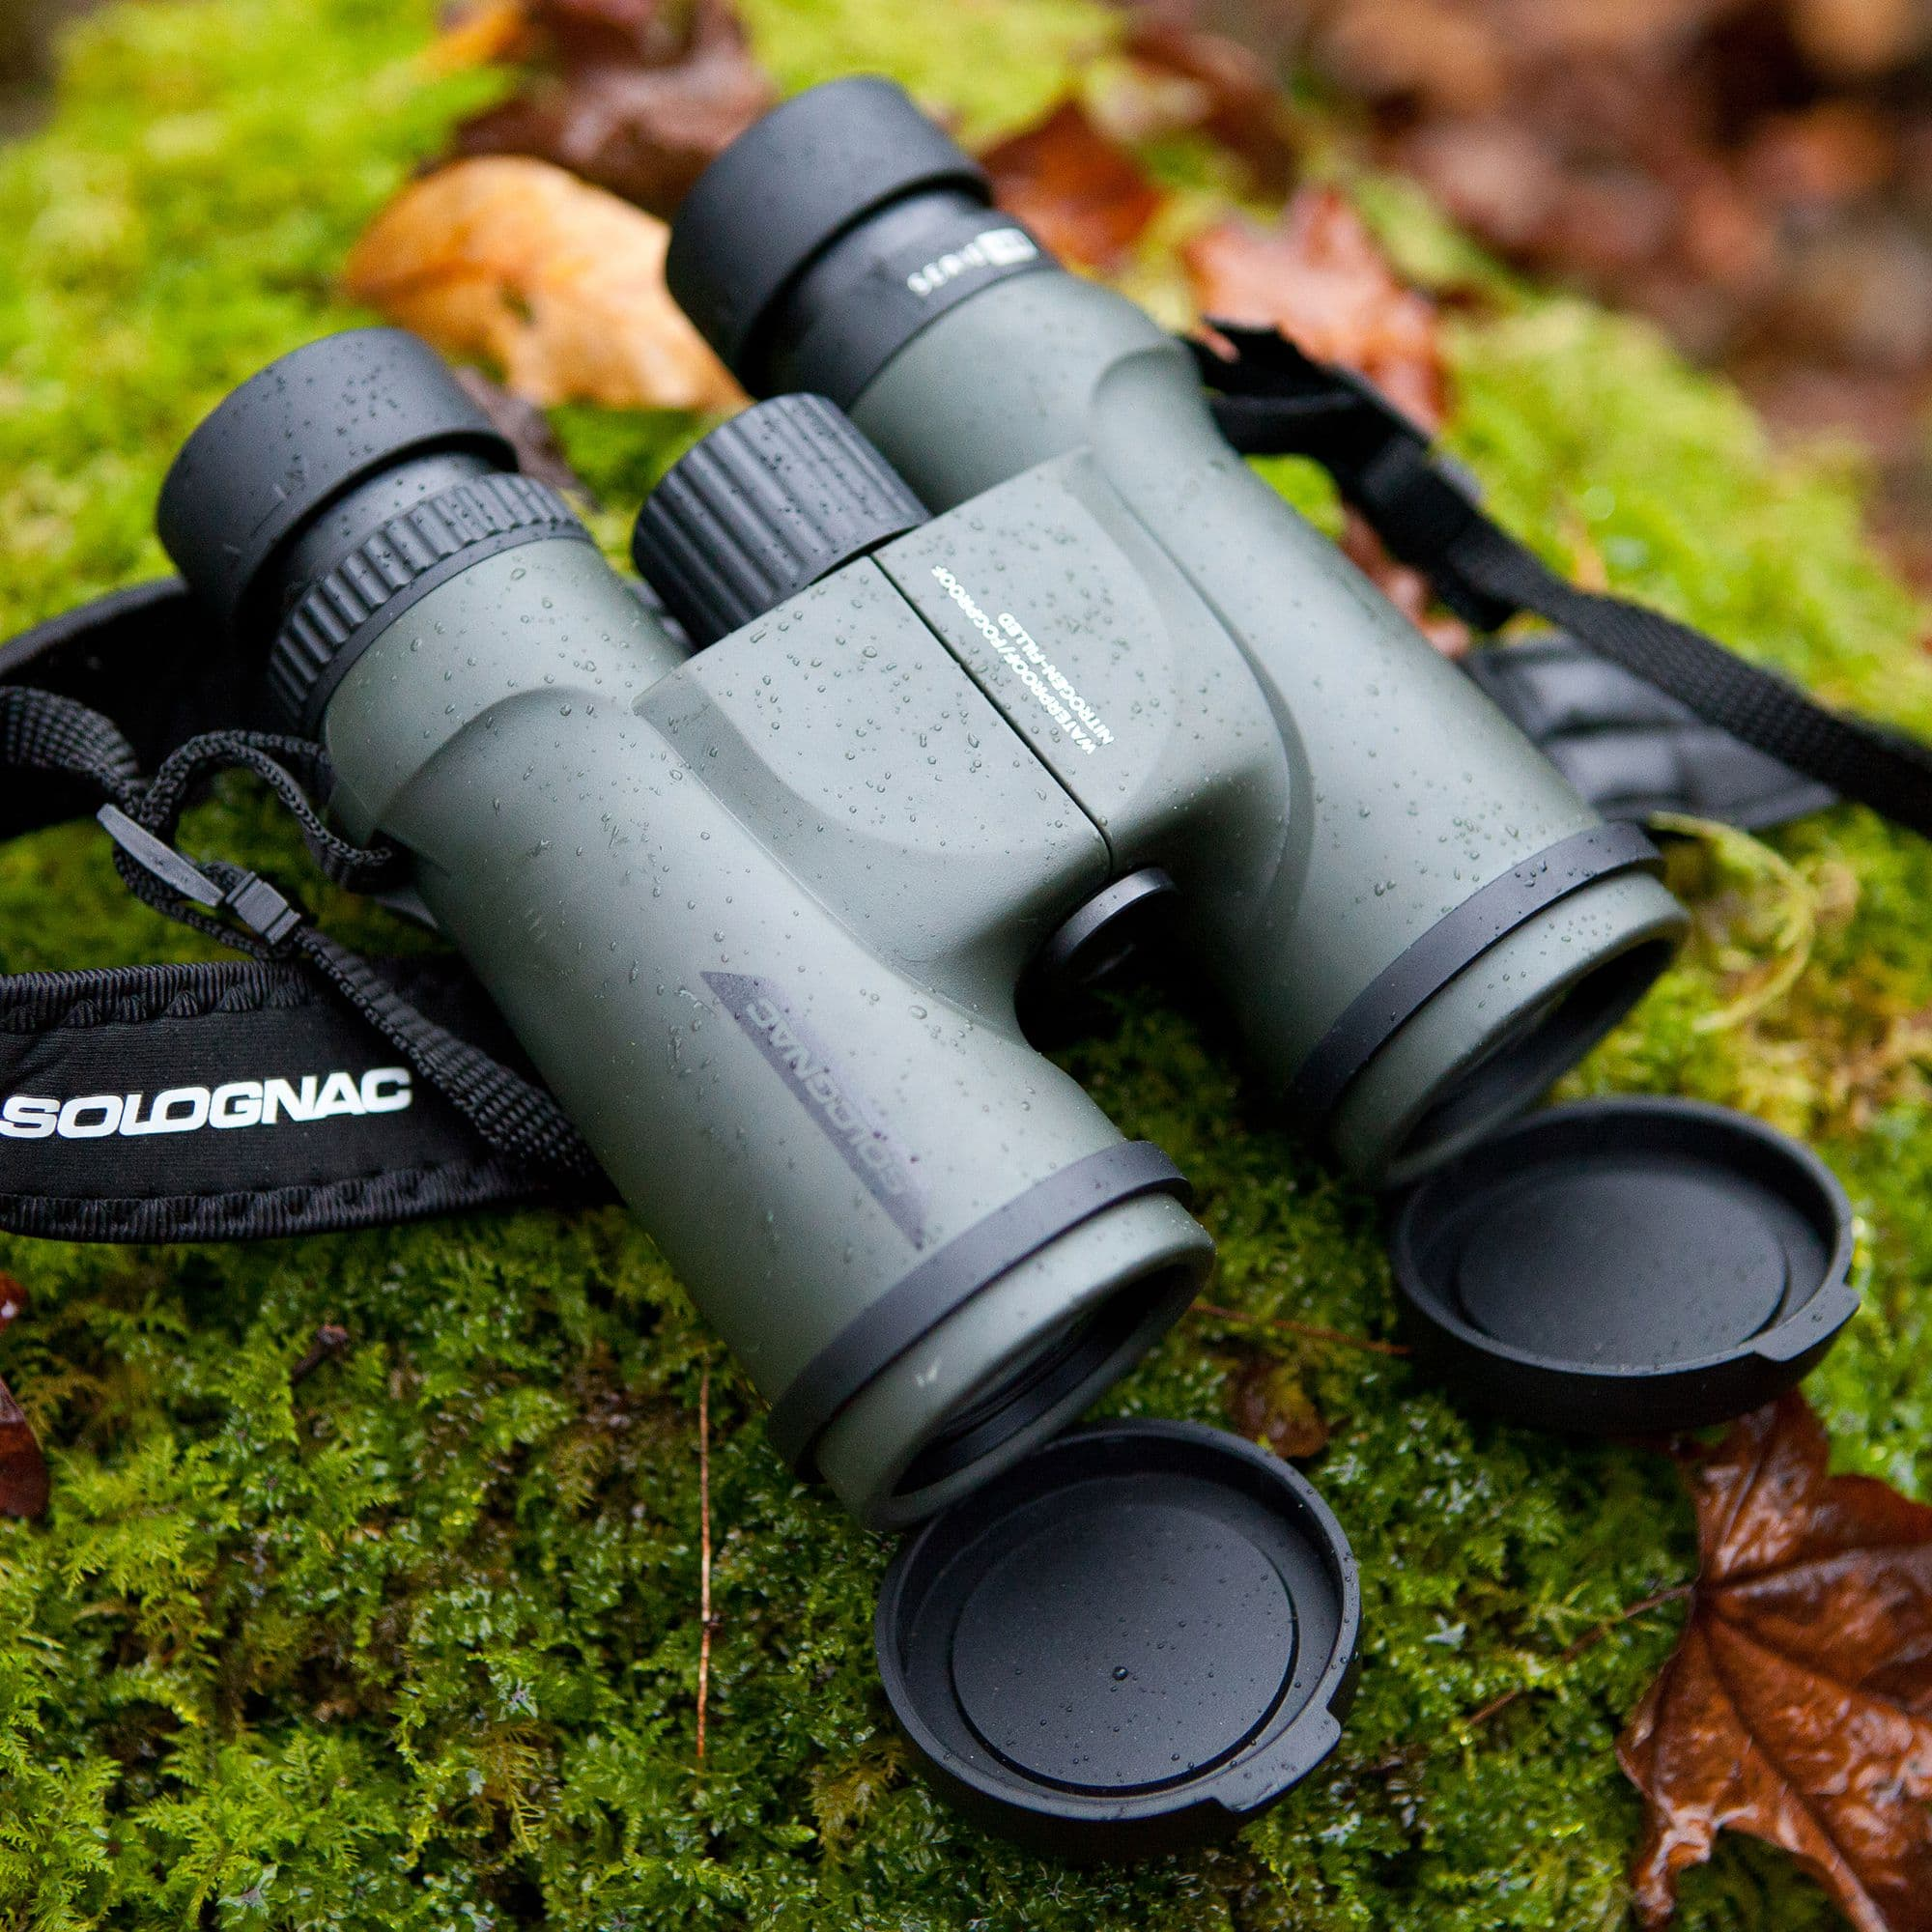 Solognac Serie 100 10X42 Binoculars : Review and Field Test